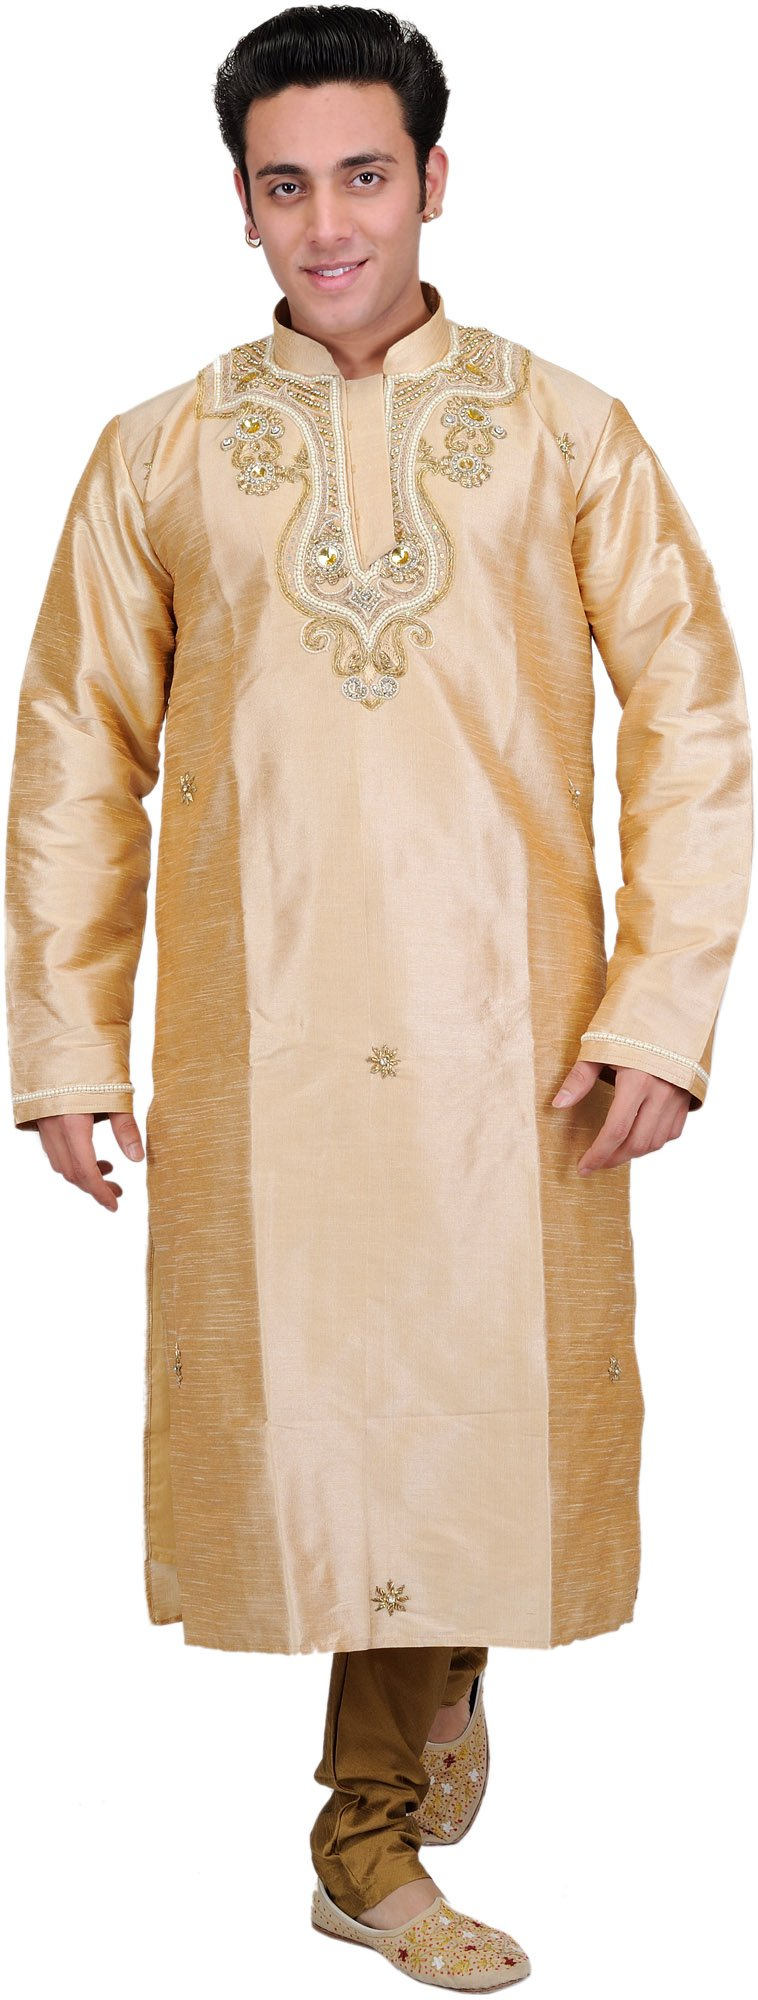 Exotic India Golden-Beige Wedding Kurta Pajama with Fau Size 40